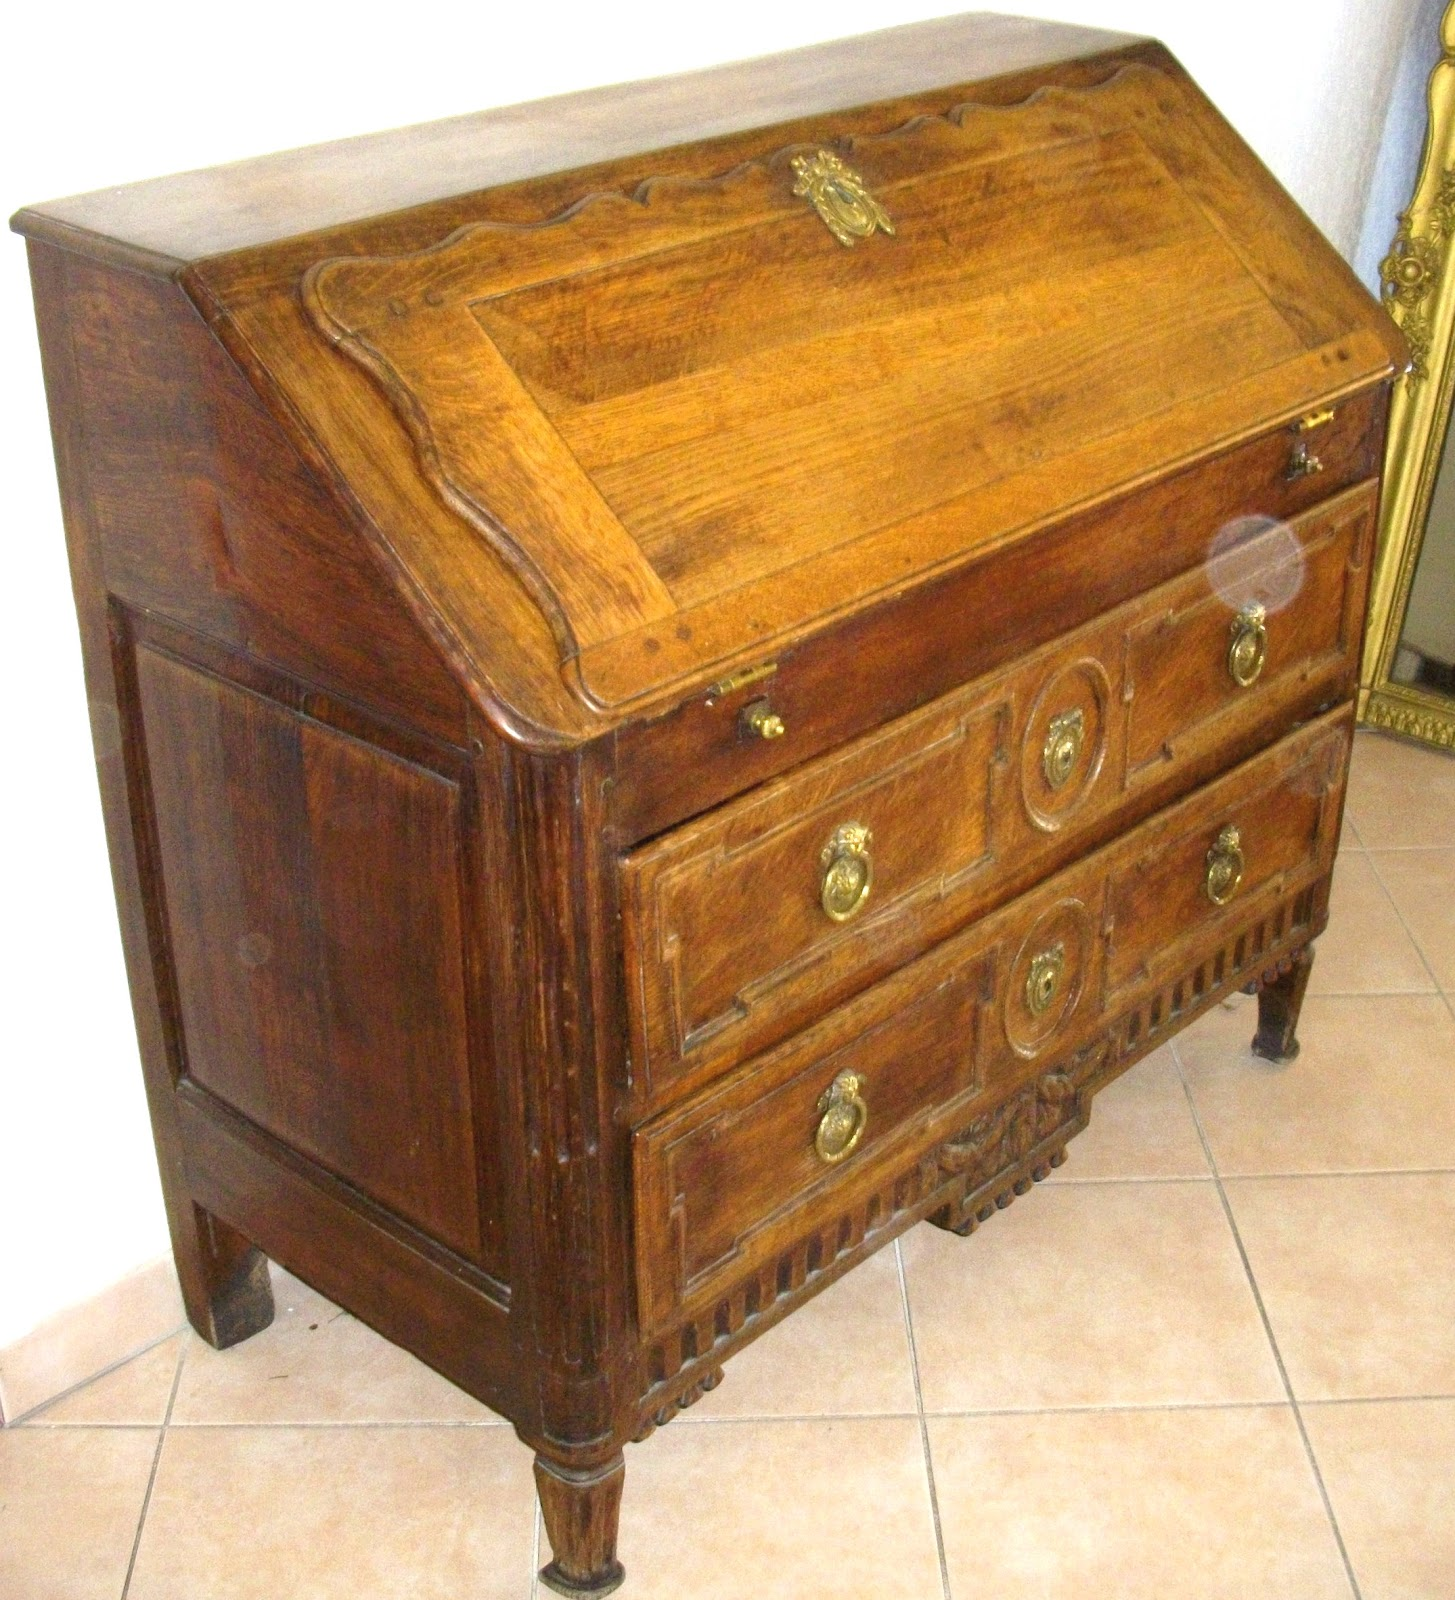 Meuble ancien bureau pente secr taire dos d 39 ane a secret for Meuble apothicaire ancien